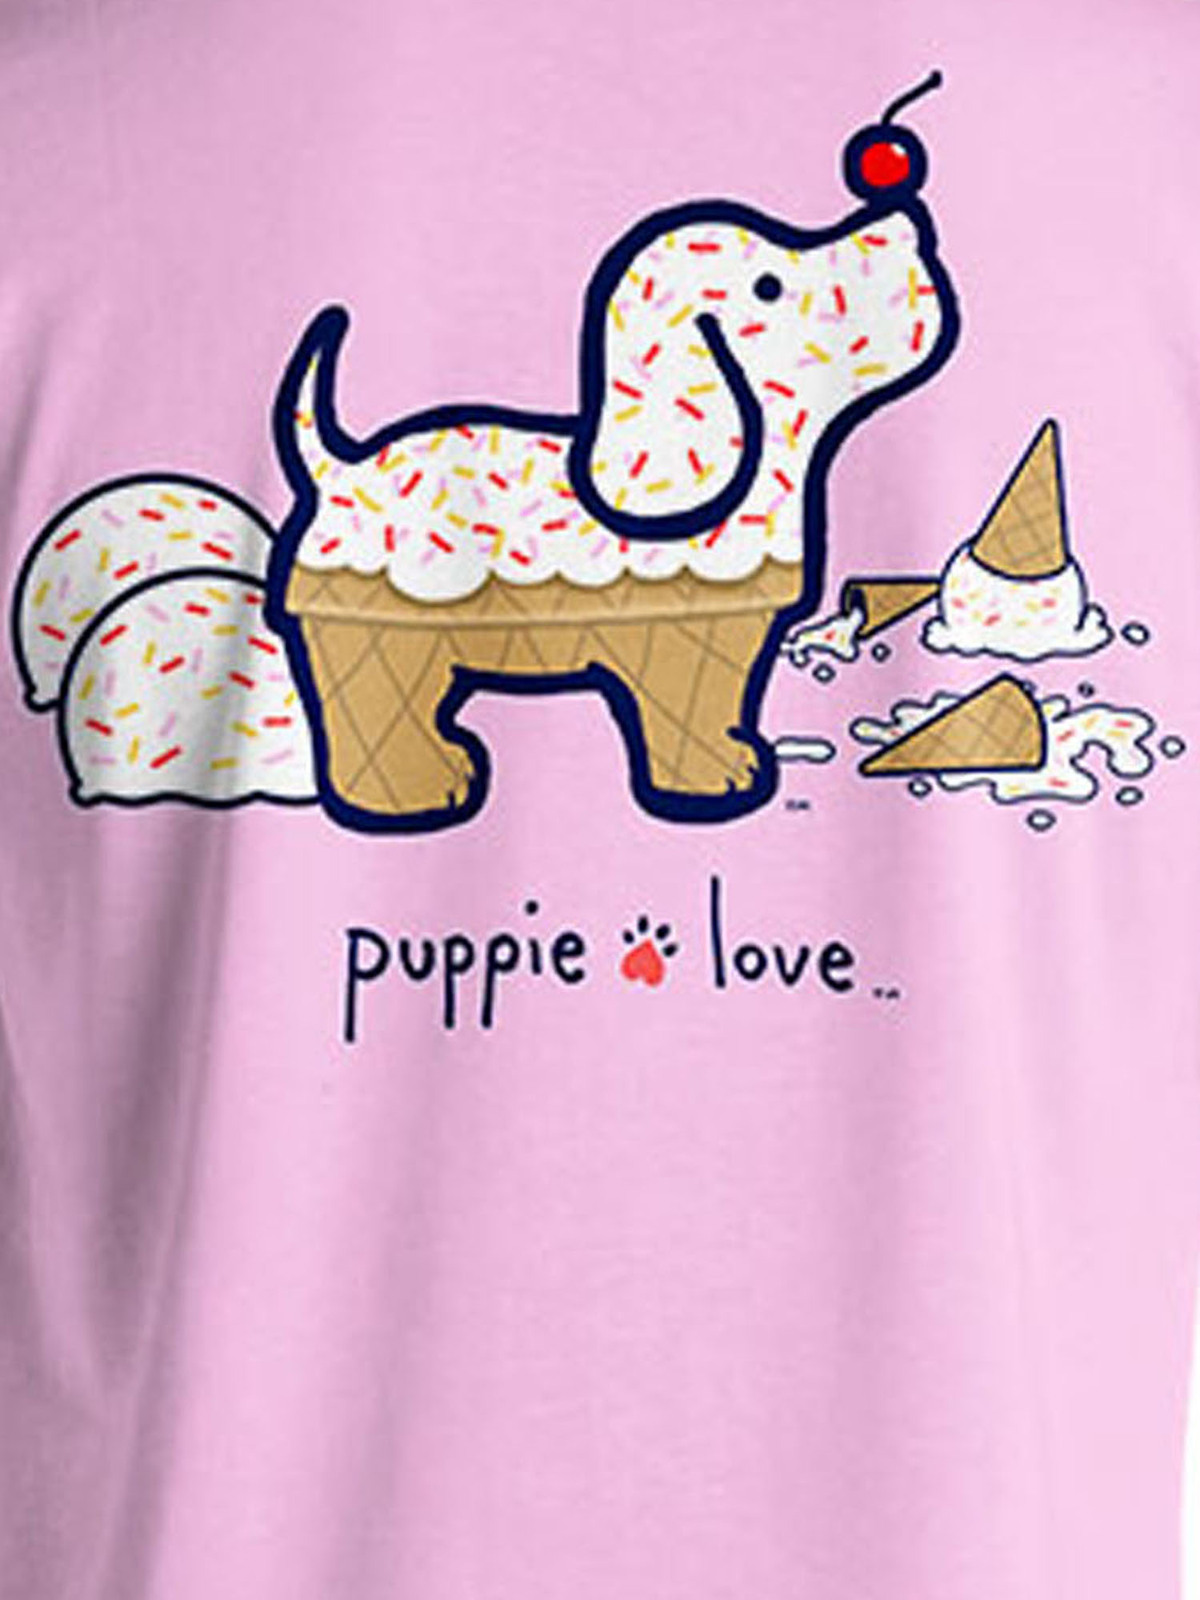 Puppie Love Rescue Dog Adult Unisex Short Sleeve Graphic T-Shirt, Ice Cream Pup